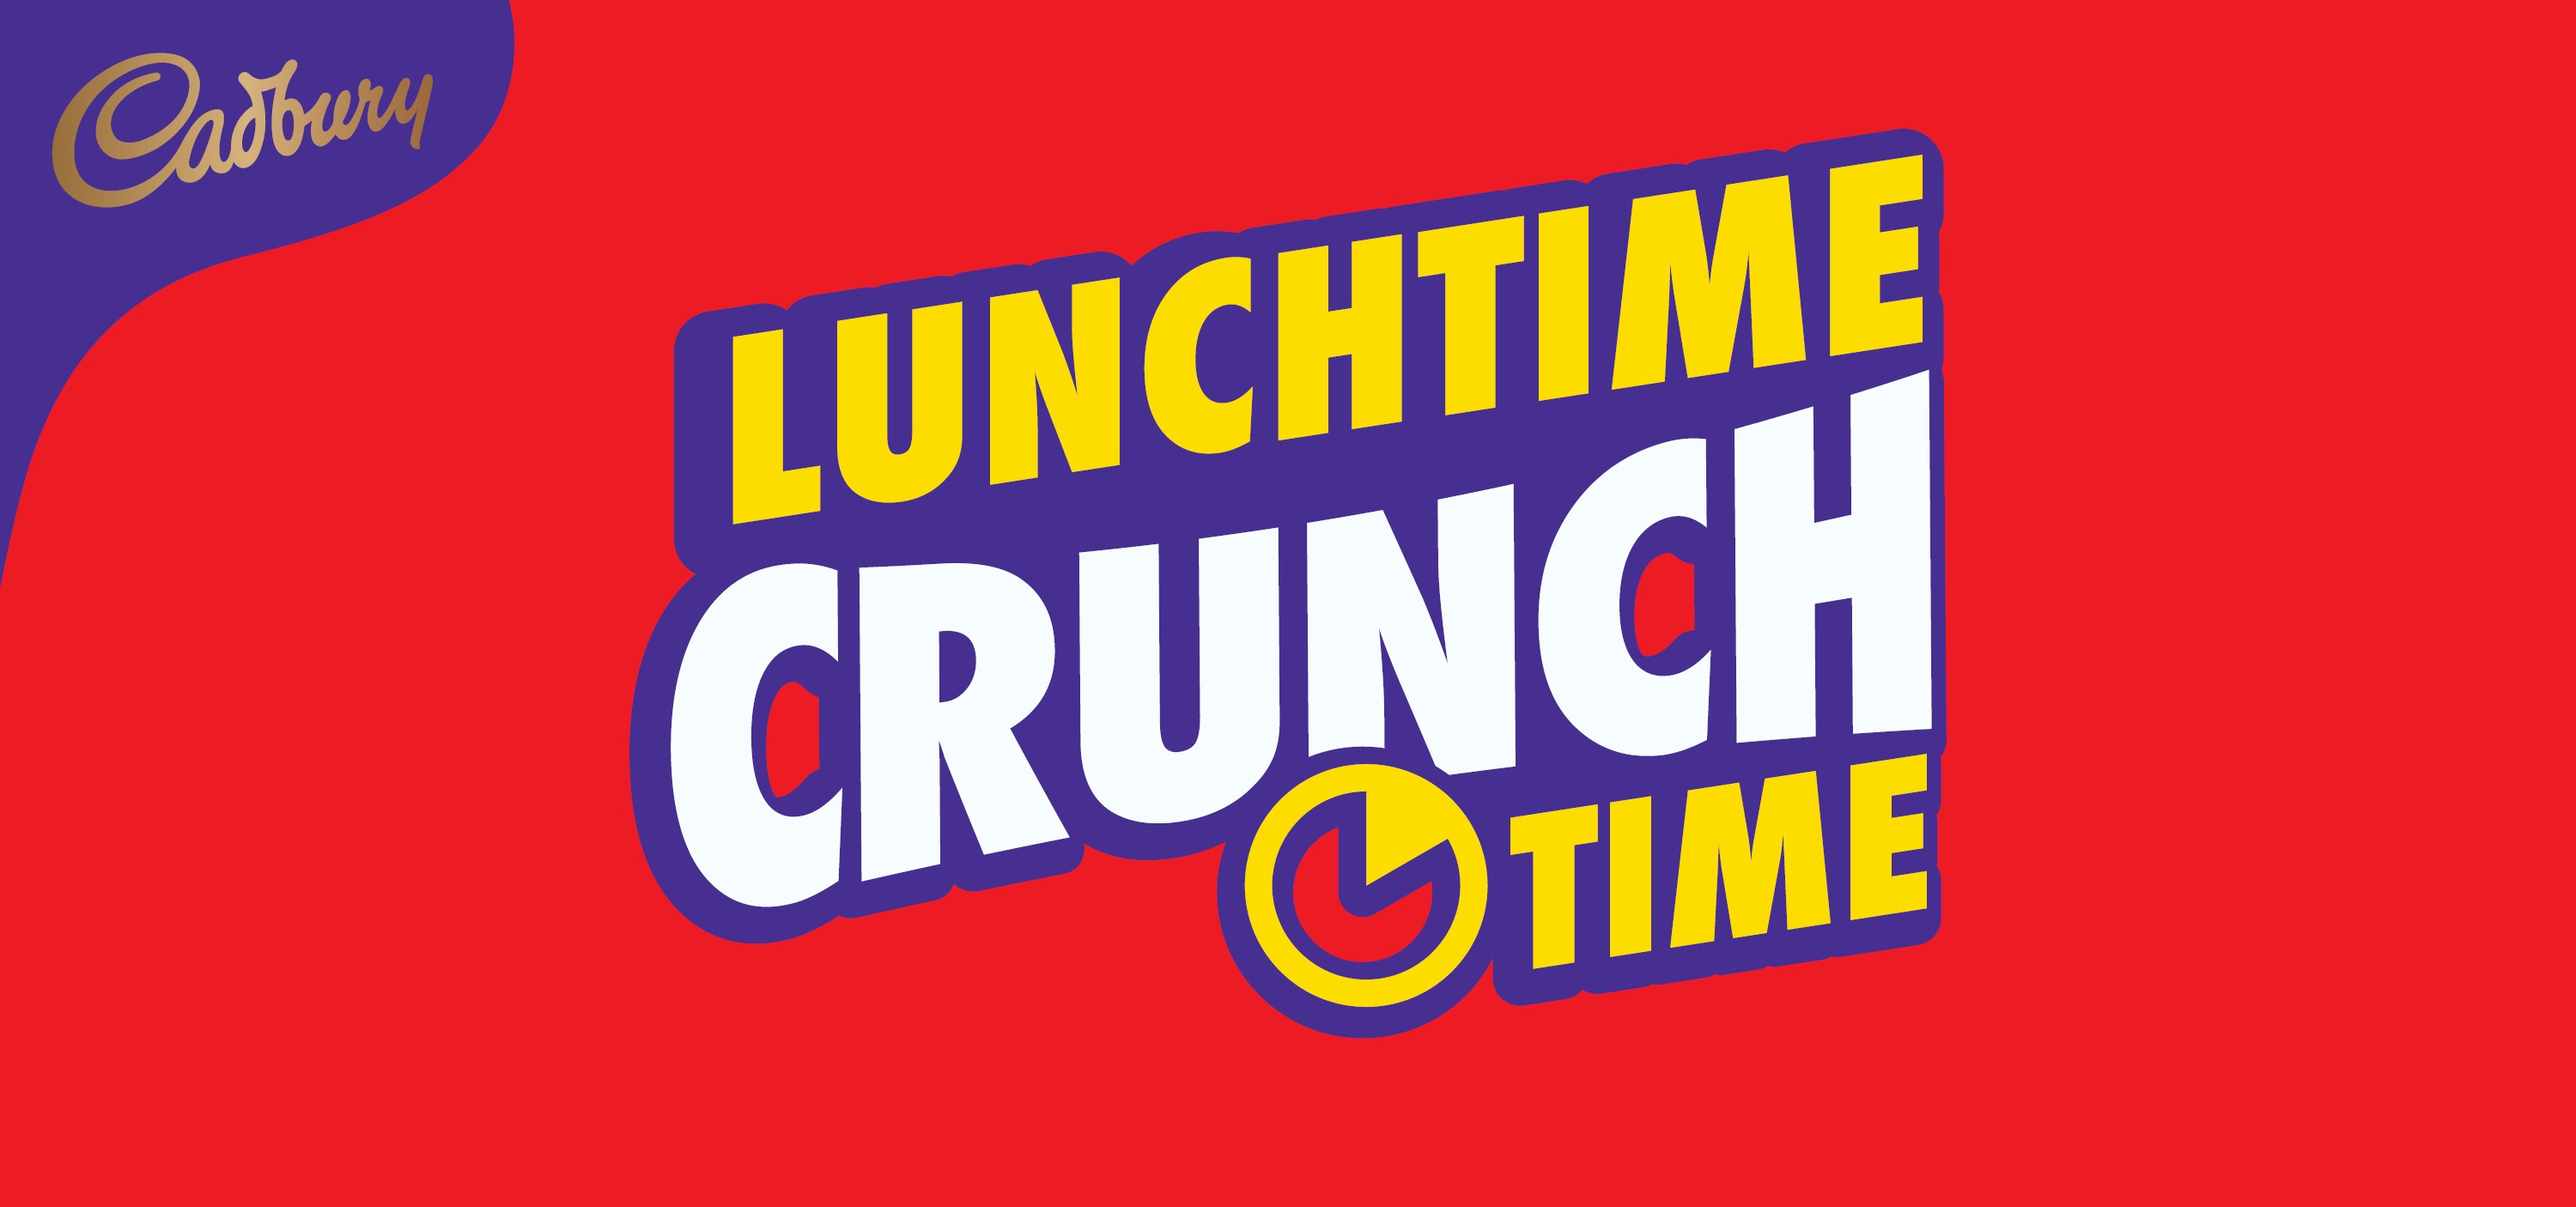 Fastest fingers WINS with Cadbury Lunch Bar Lunchtime Crunchtime #Muchmuchmore #Oviaas